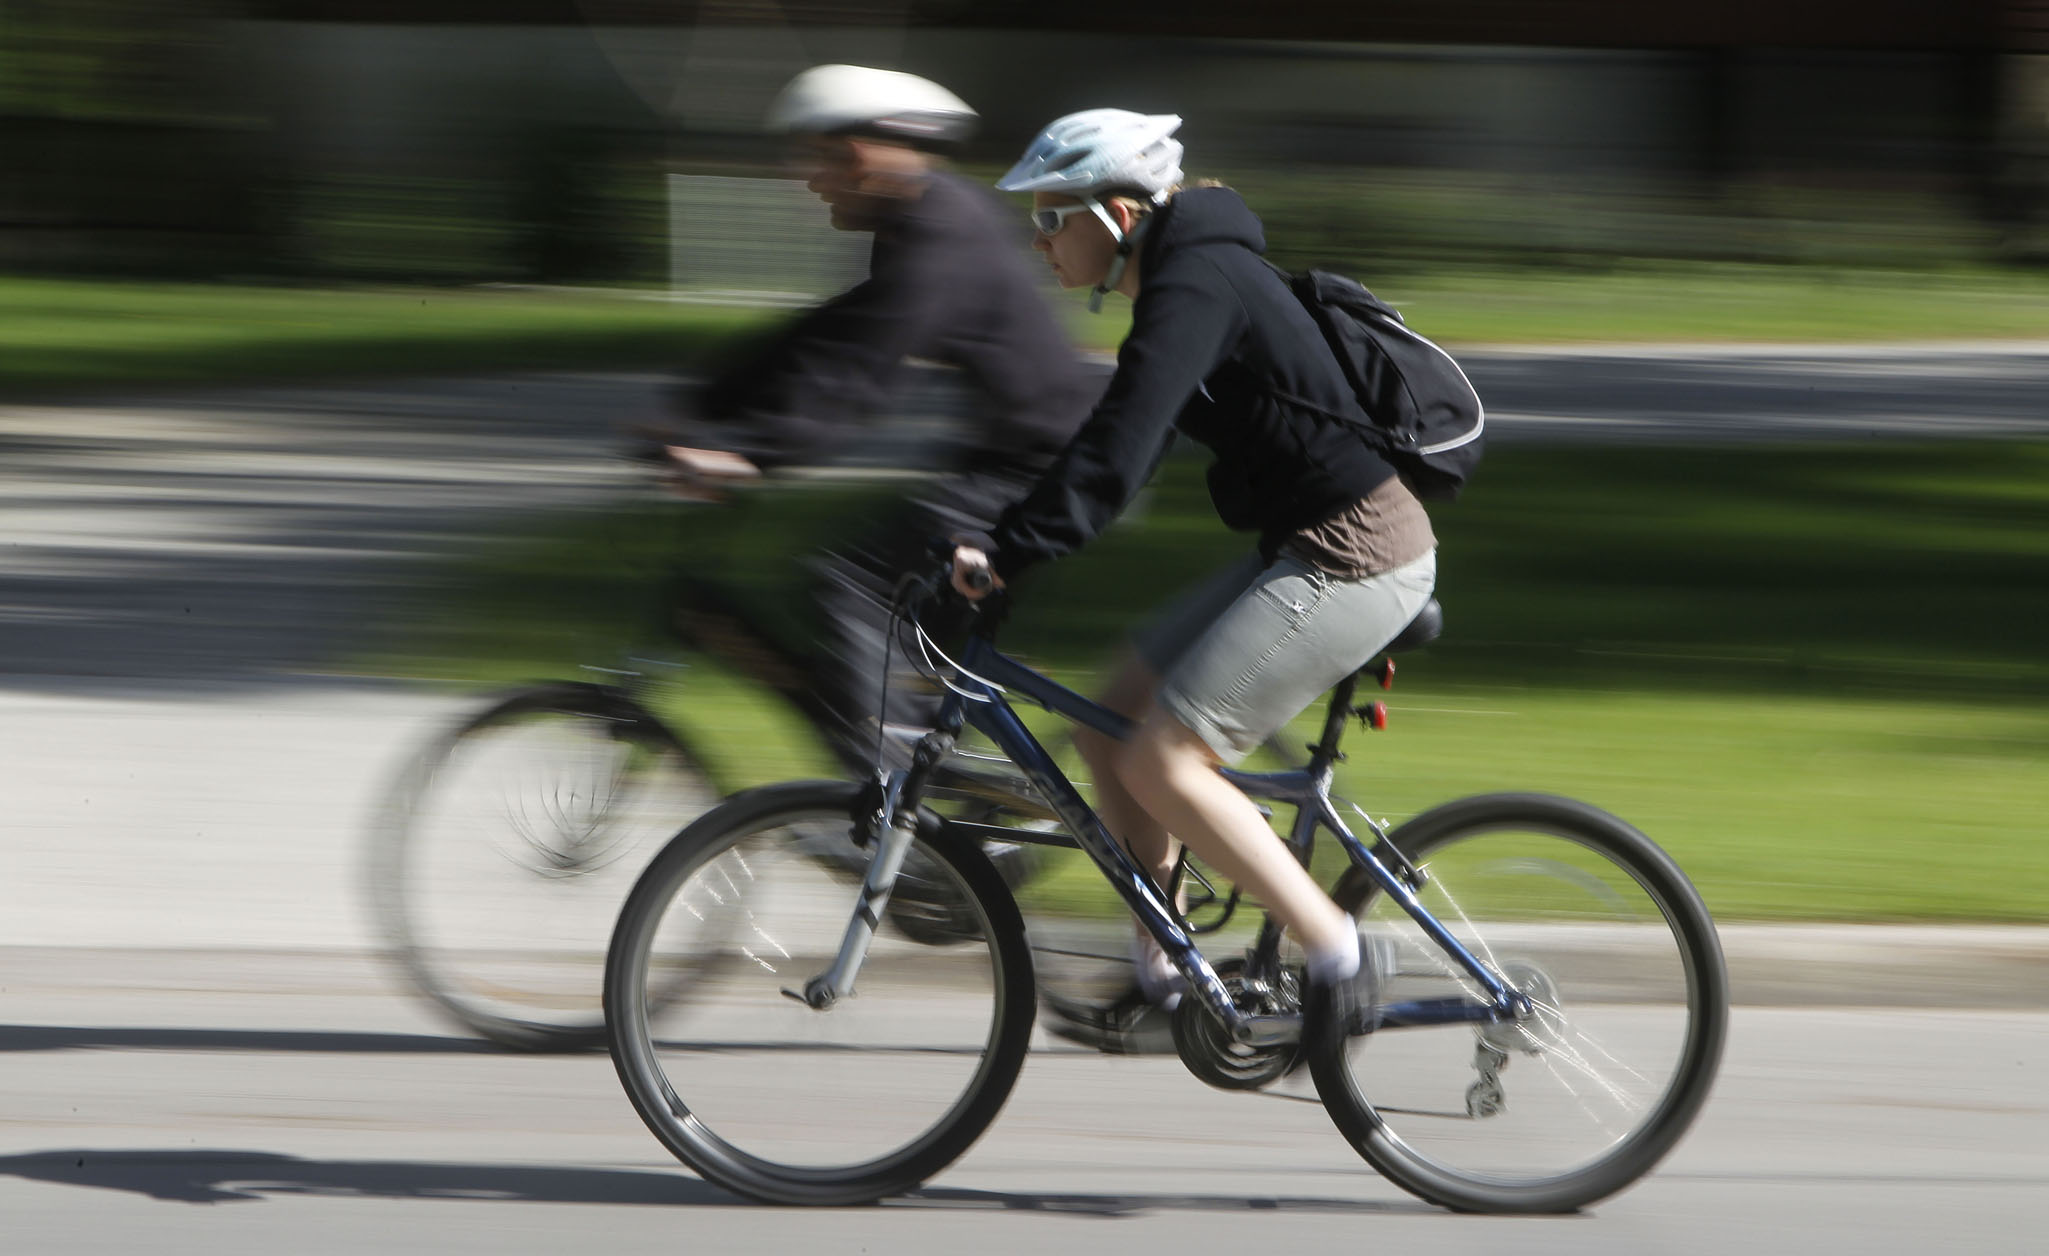 City hall hopes to have a bylaw in place to allow police to enforce the Sunday street closures along bike routes such as Wellington Crescent.